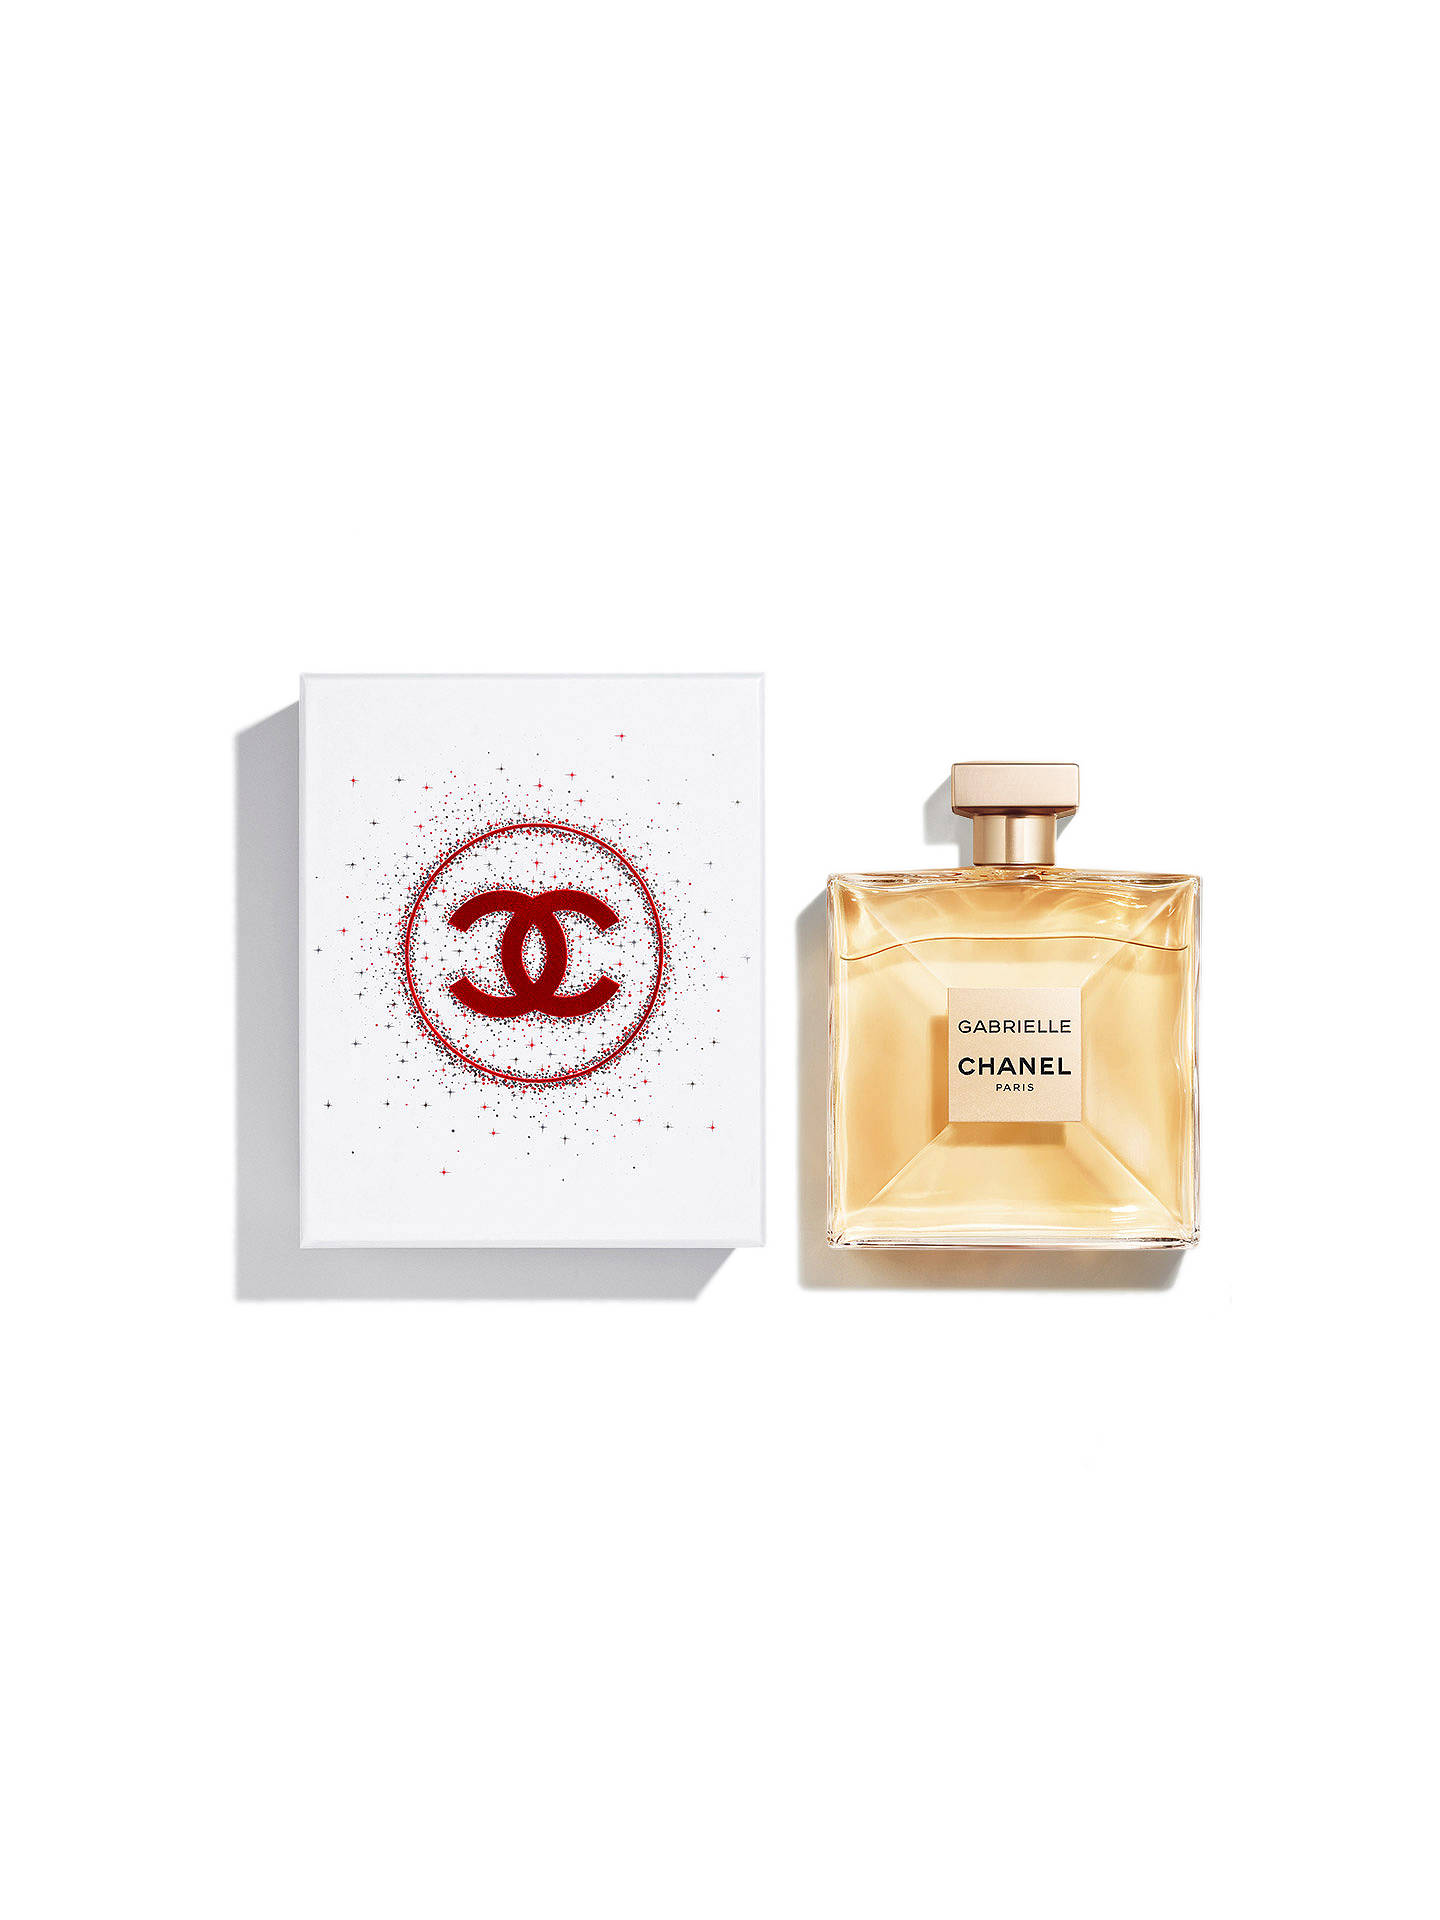 29c518271a031d Buy CHANEL GABRIELLE CHANEL Eau de Parfum Spray, 100ml with Gift Box Online  at johnlewis